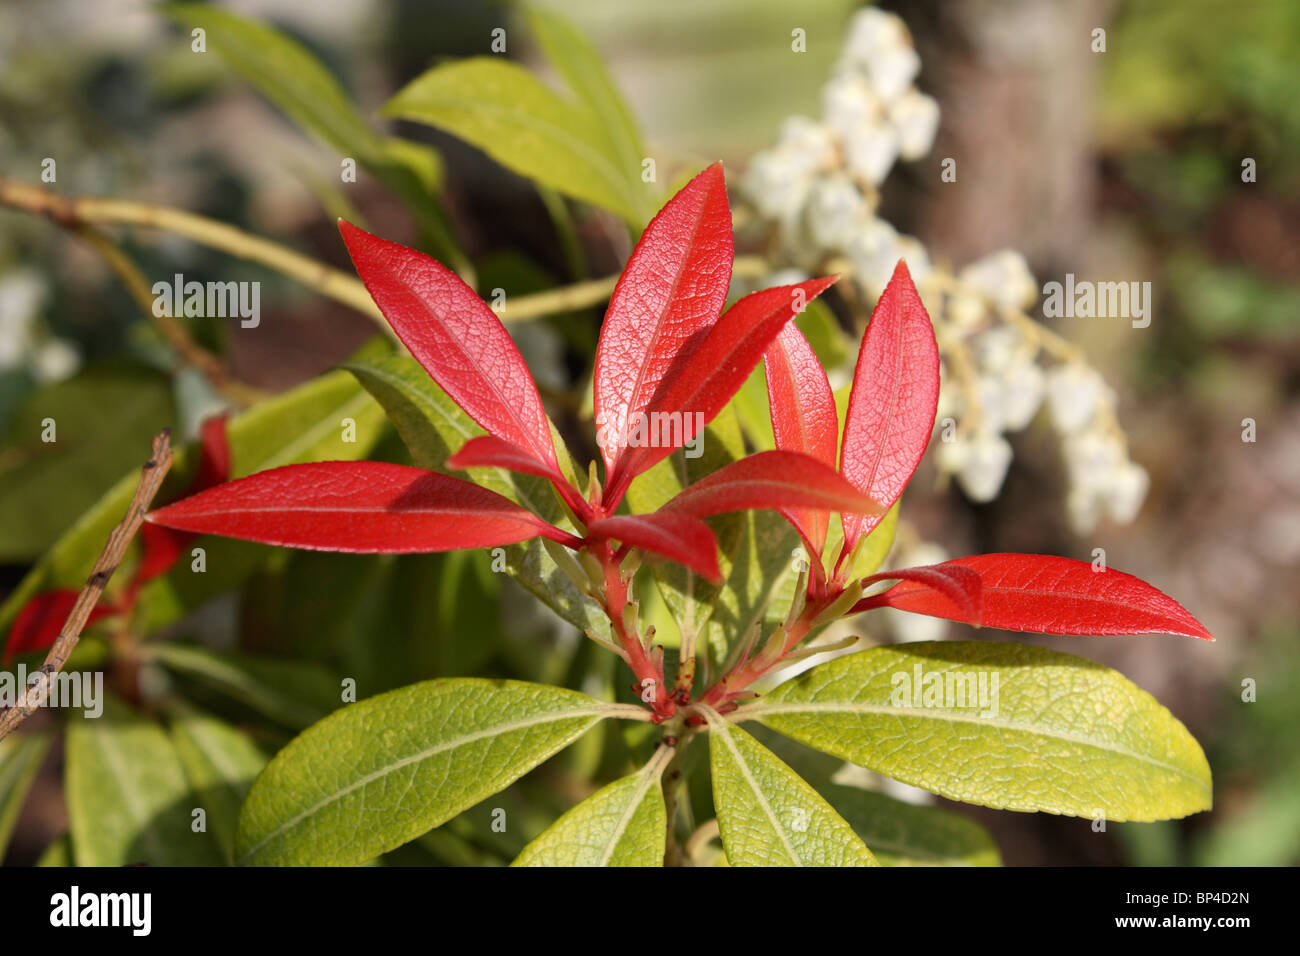 Red Leaves White Flowers Stock Photos Red Leaves White Flowers